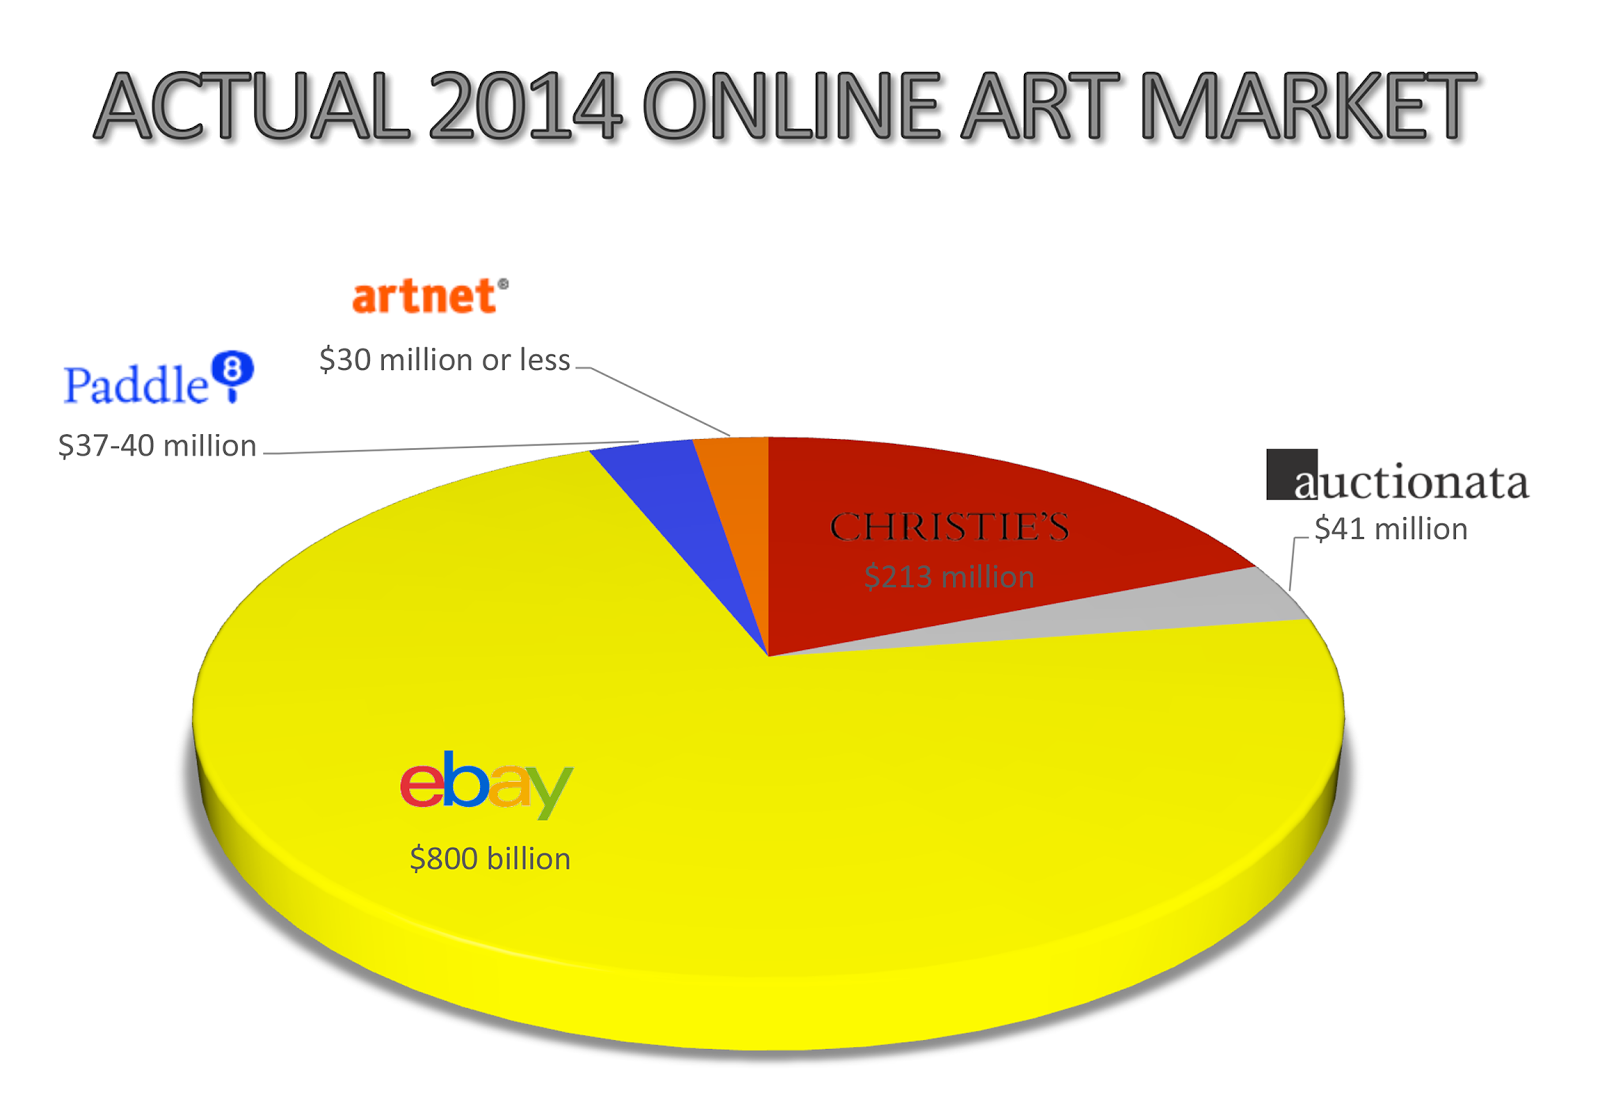 Actual 2014 Online Art Market Estimate by Joseph K. Levene, The Fine Art Blog